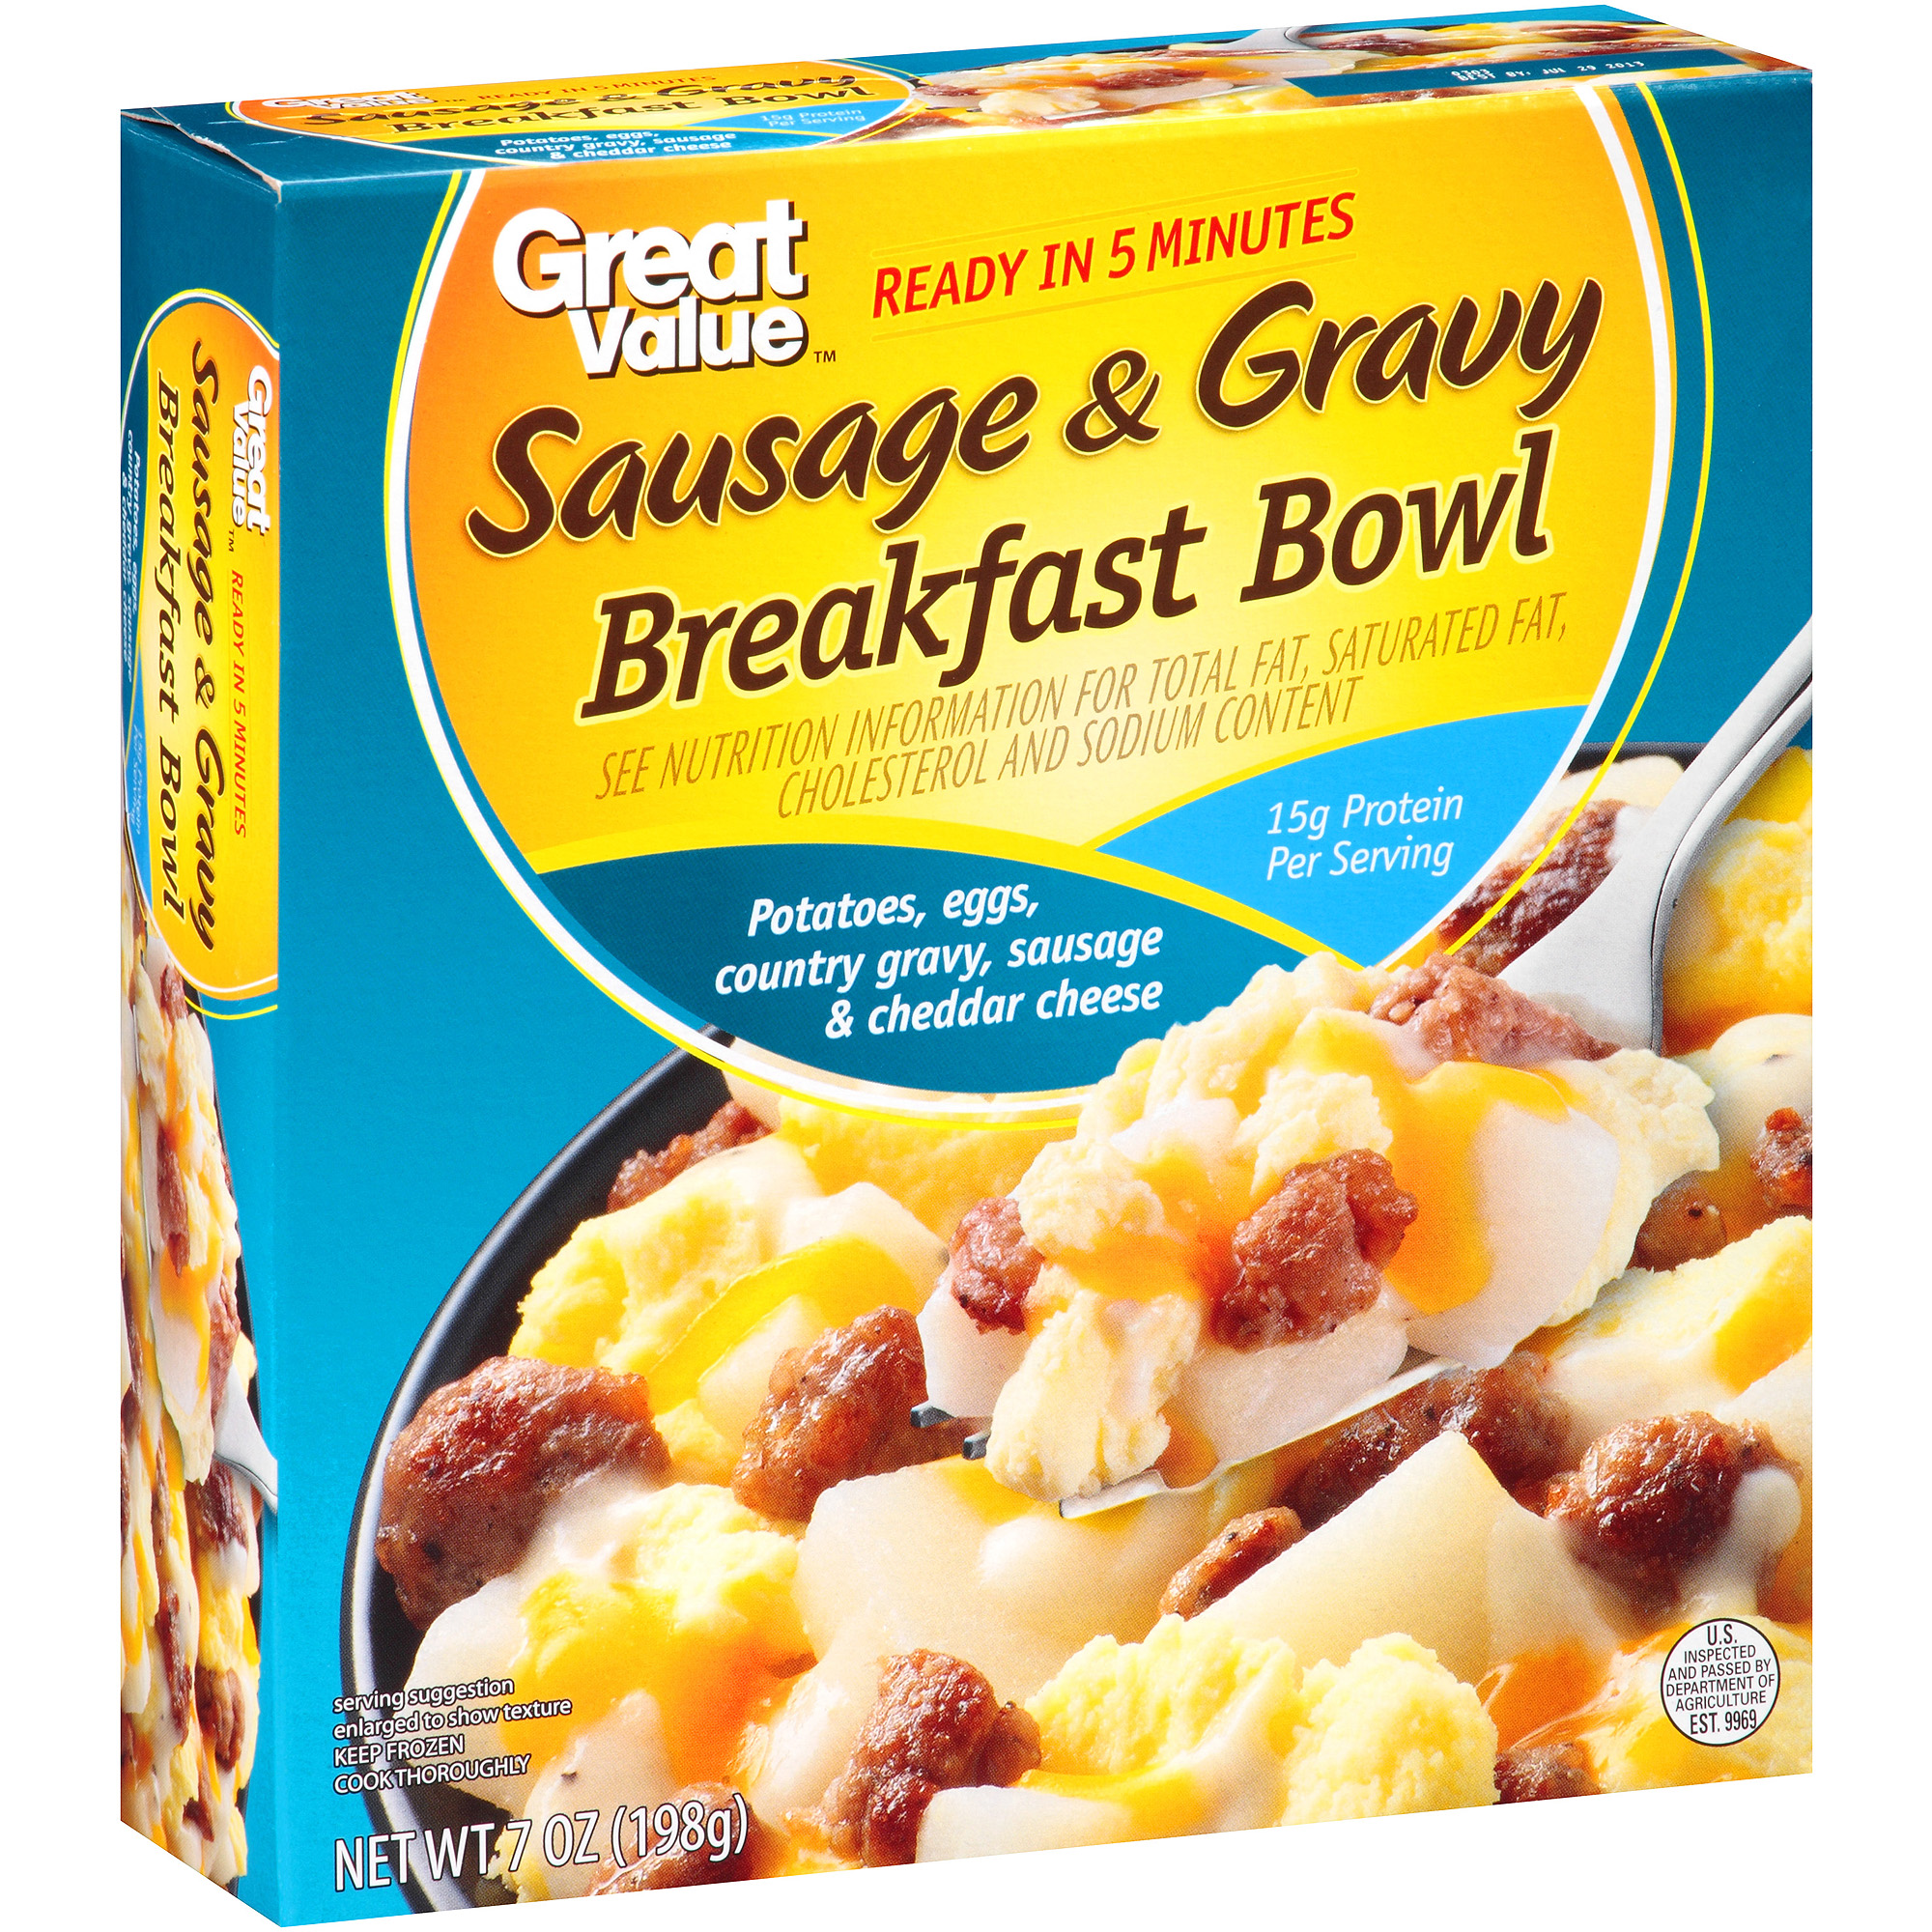 Great Value Sausage & Gravy Breakfast Bowl, 7 oz